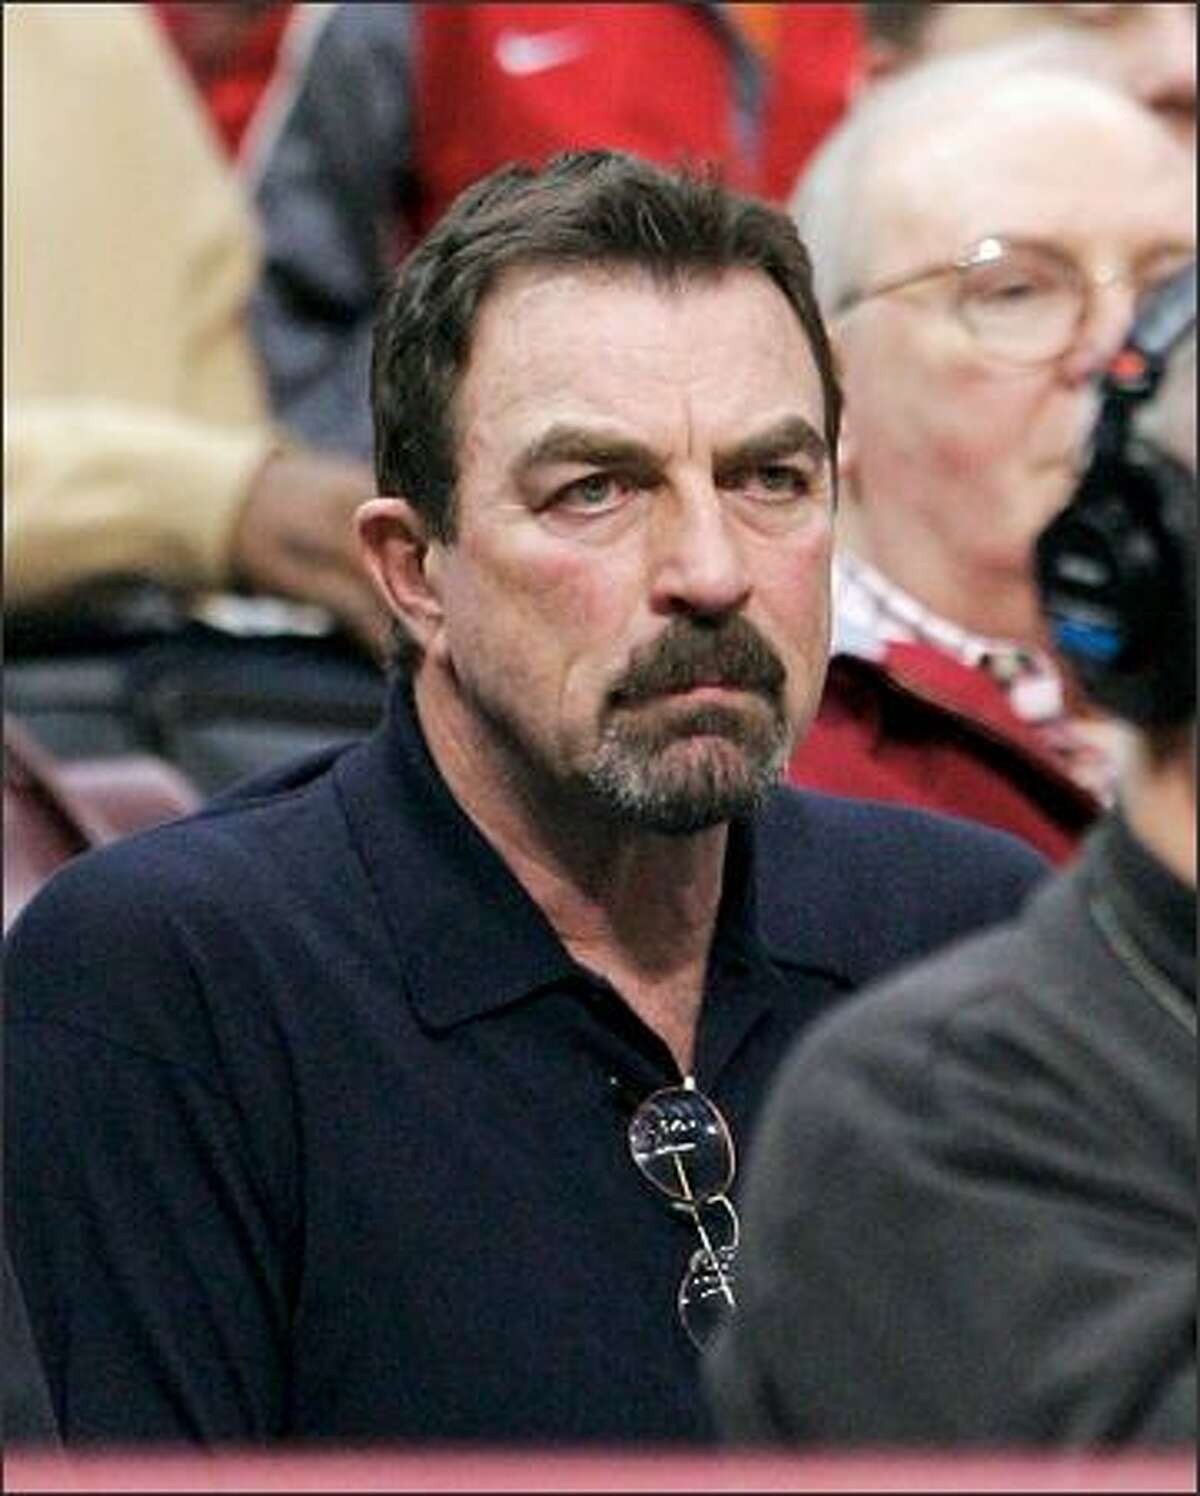 The face of Tom Selleck registers his excitement during a recent college b-ball game in L.A. The ex-